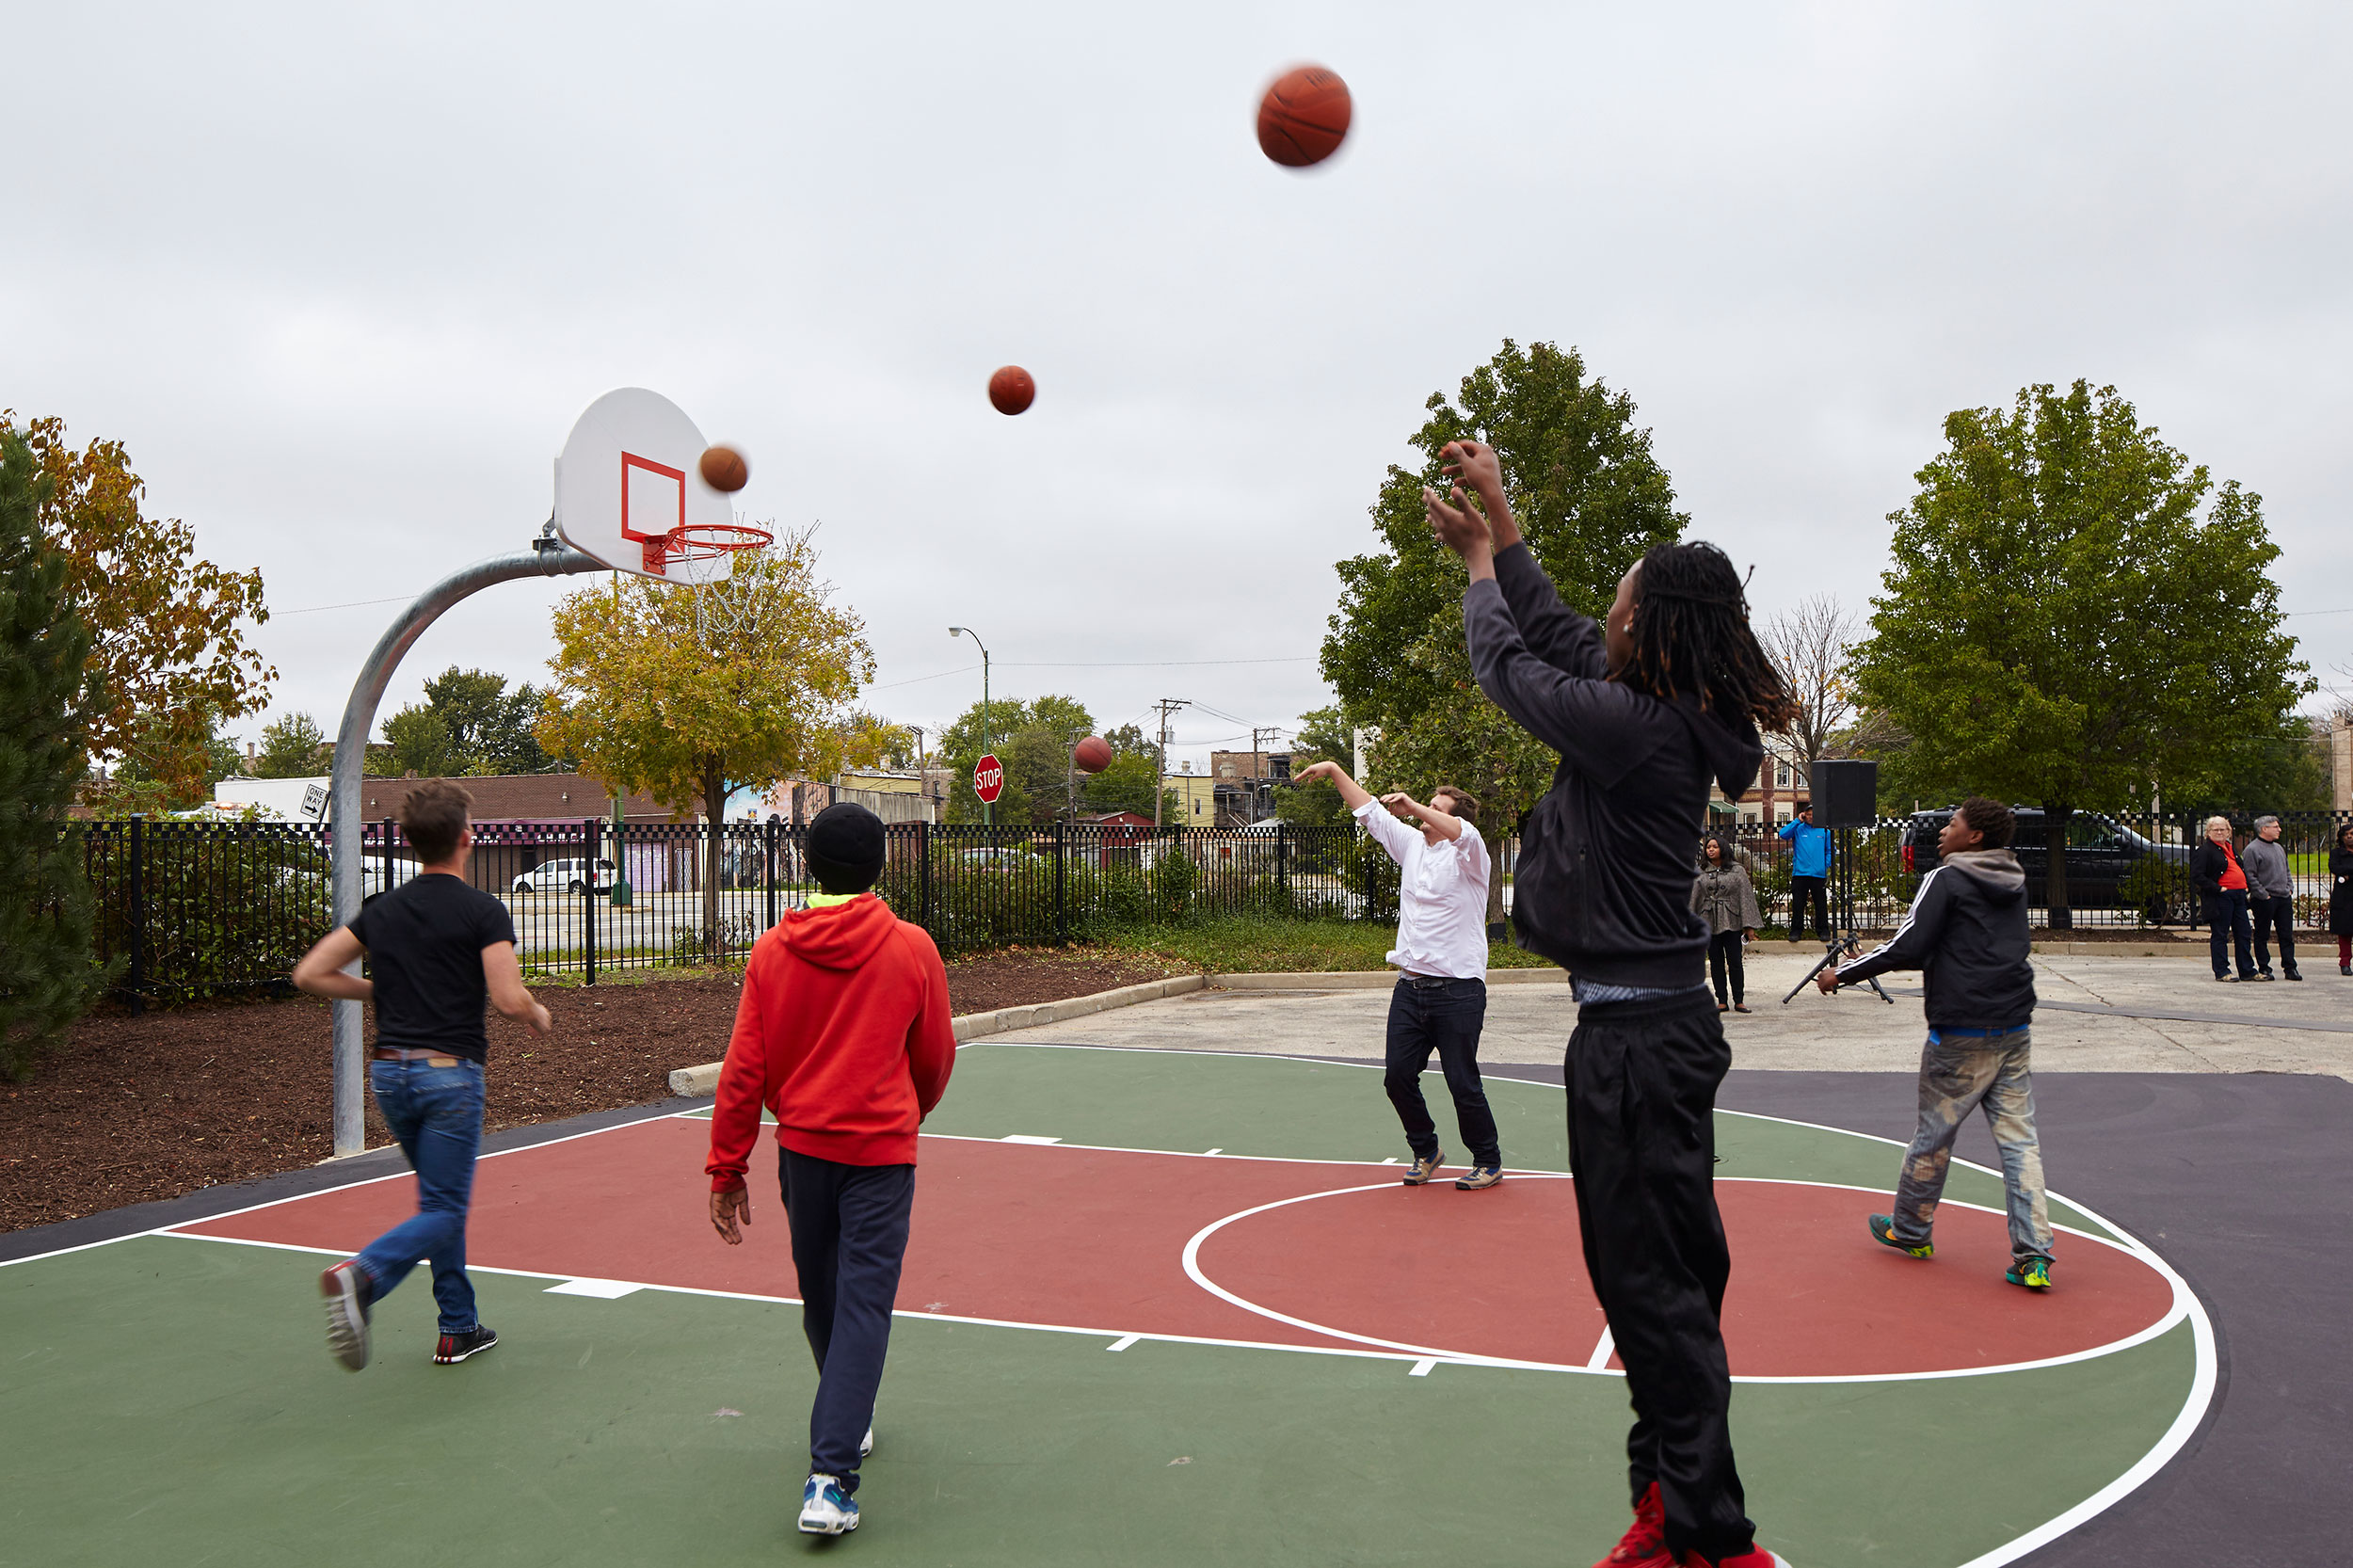 Polis Station, Chicago. This half-sized basketball court on the car park of a police station in the West Side of Chicago marks the start of Studio Gang's initiative to combat tensions between the police and the community by rethinking the police station as a safe space for local youths to socialise and play.